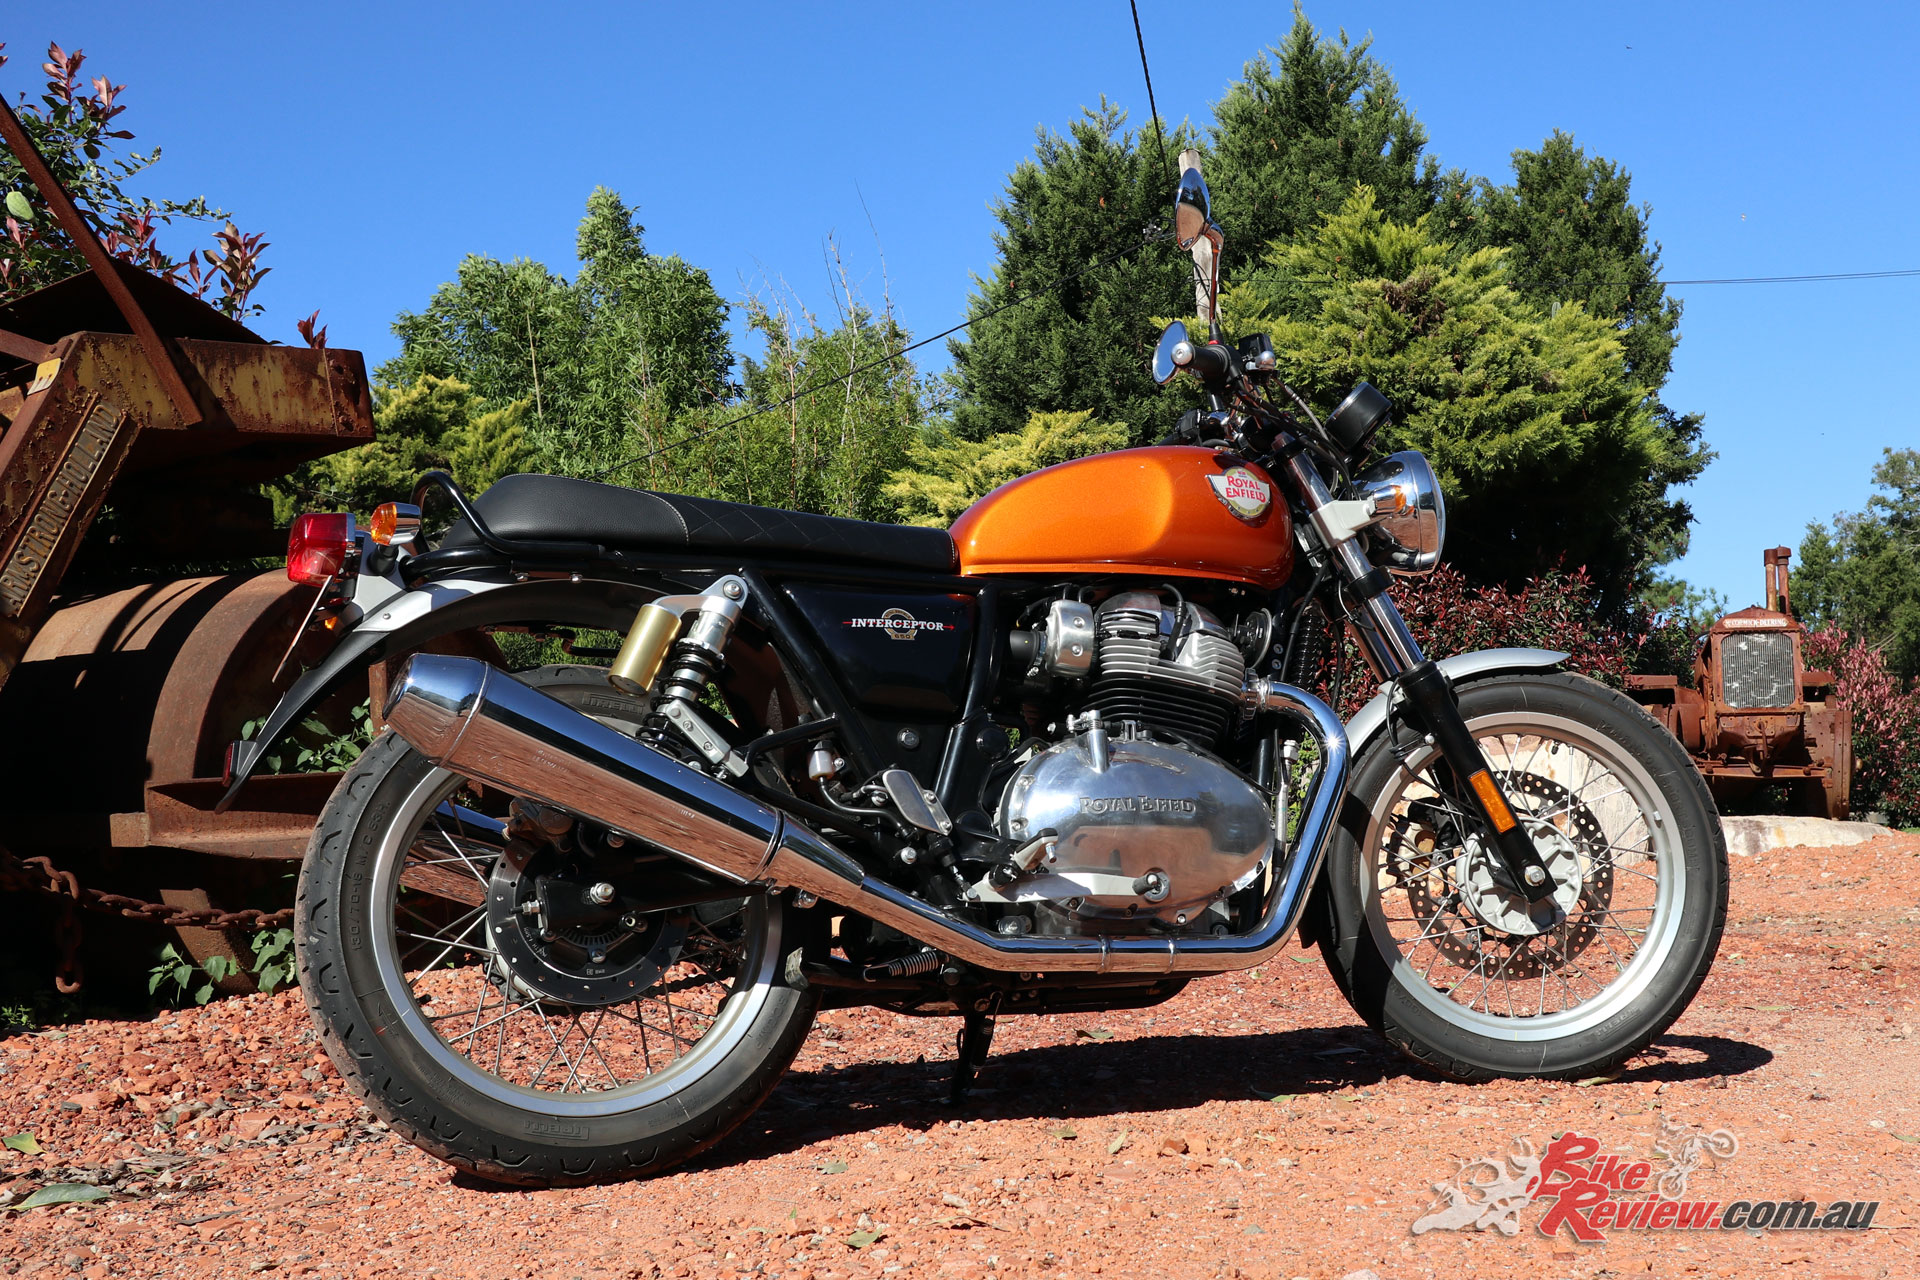 The Interceptor 650 is the more relaxed of the two new Royal Enfield twins